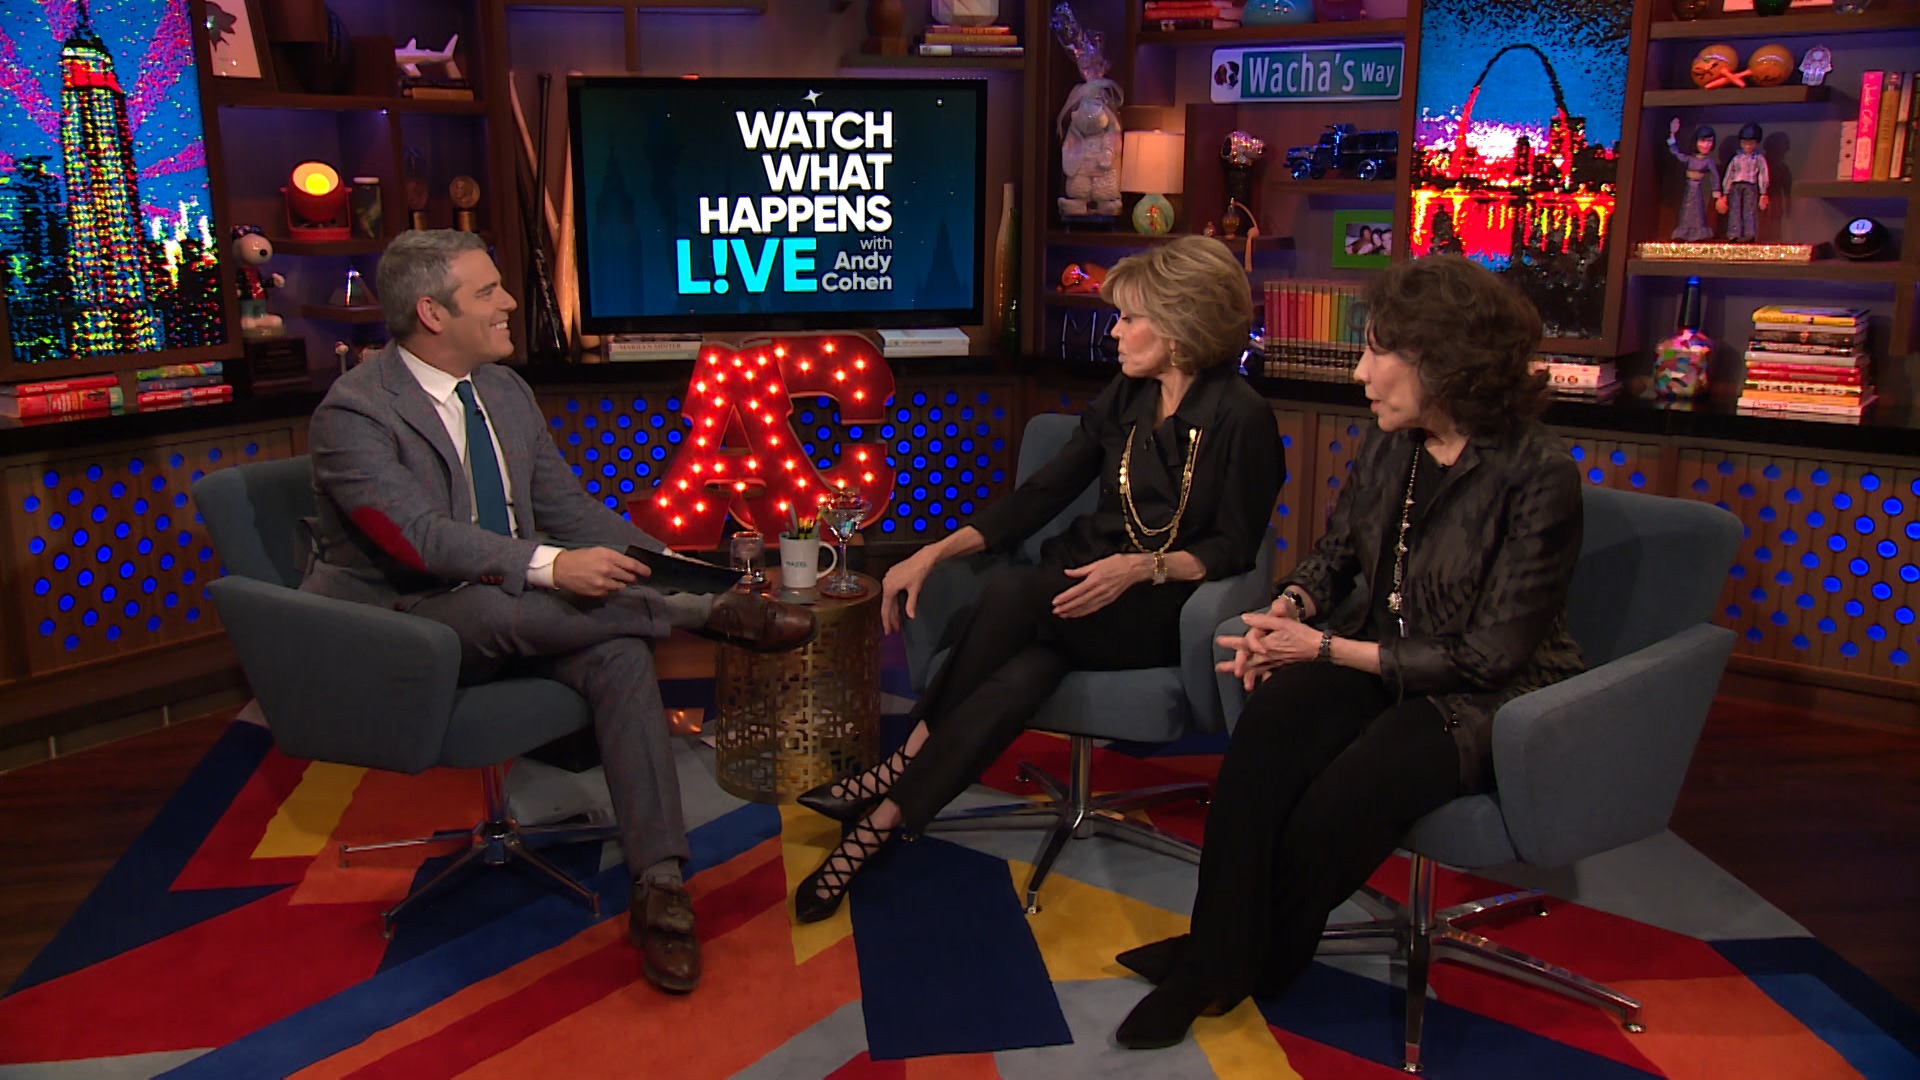 Jane Fonda is on the set of What Happens Live. On her company is the host Andy Cohen on the left side and Lily Tomlin on the right. She is in a full black attire. They're having a conversation. Therefore, Jane and Lily are facing the host.